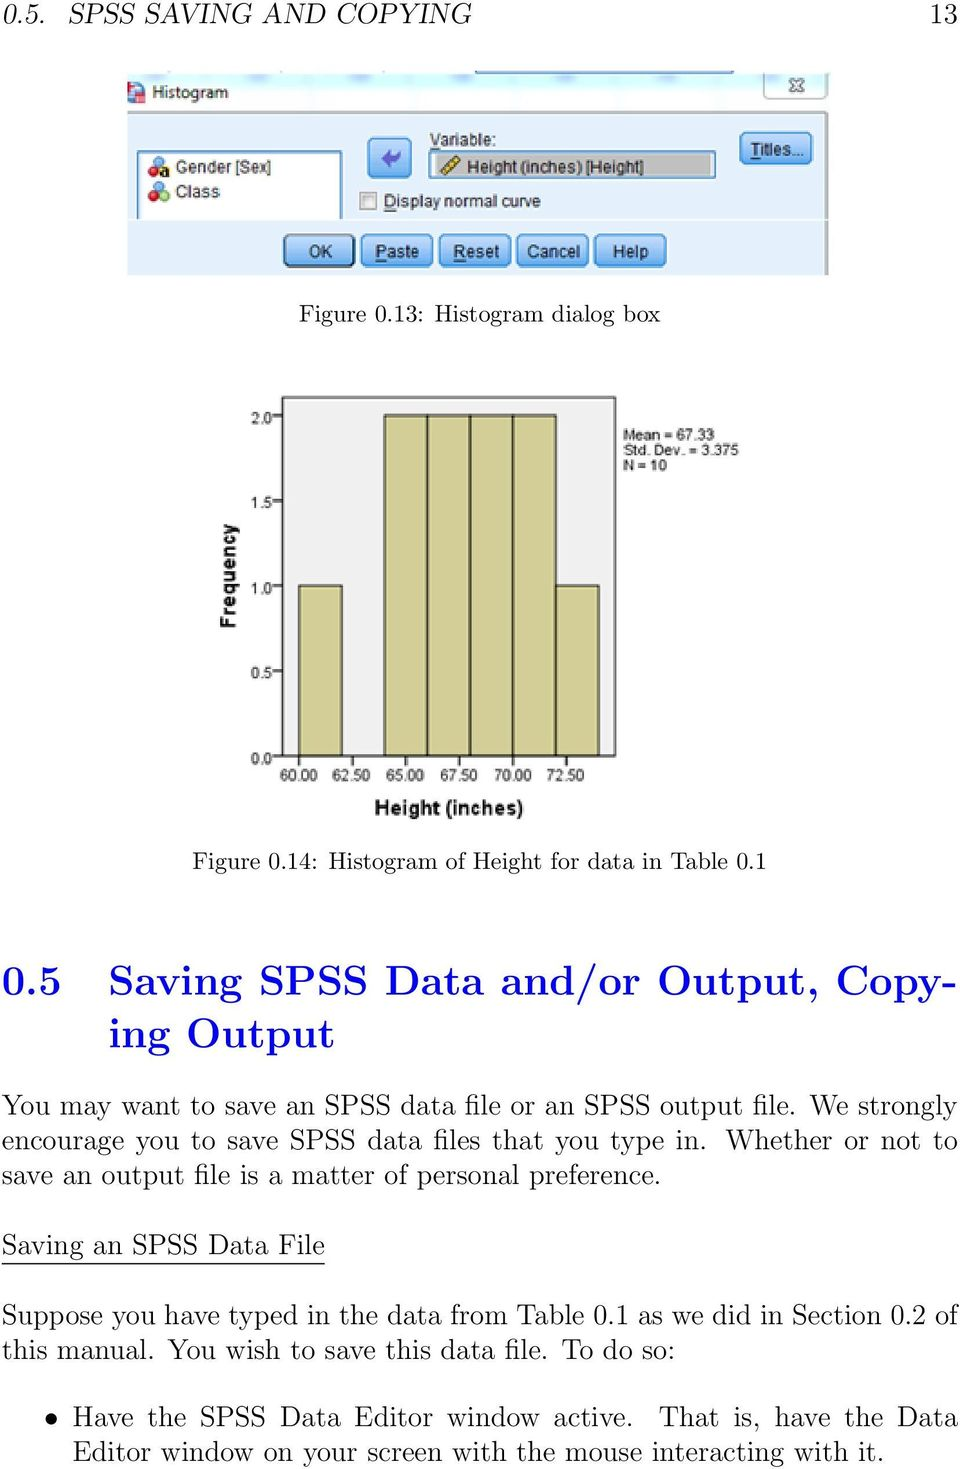 We strongly encourage you to save SPSS data files that you type in. Whether or not to save an output file is a matter of personal preference.